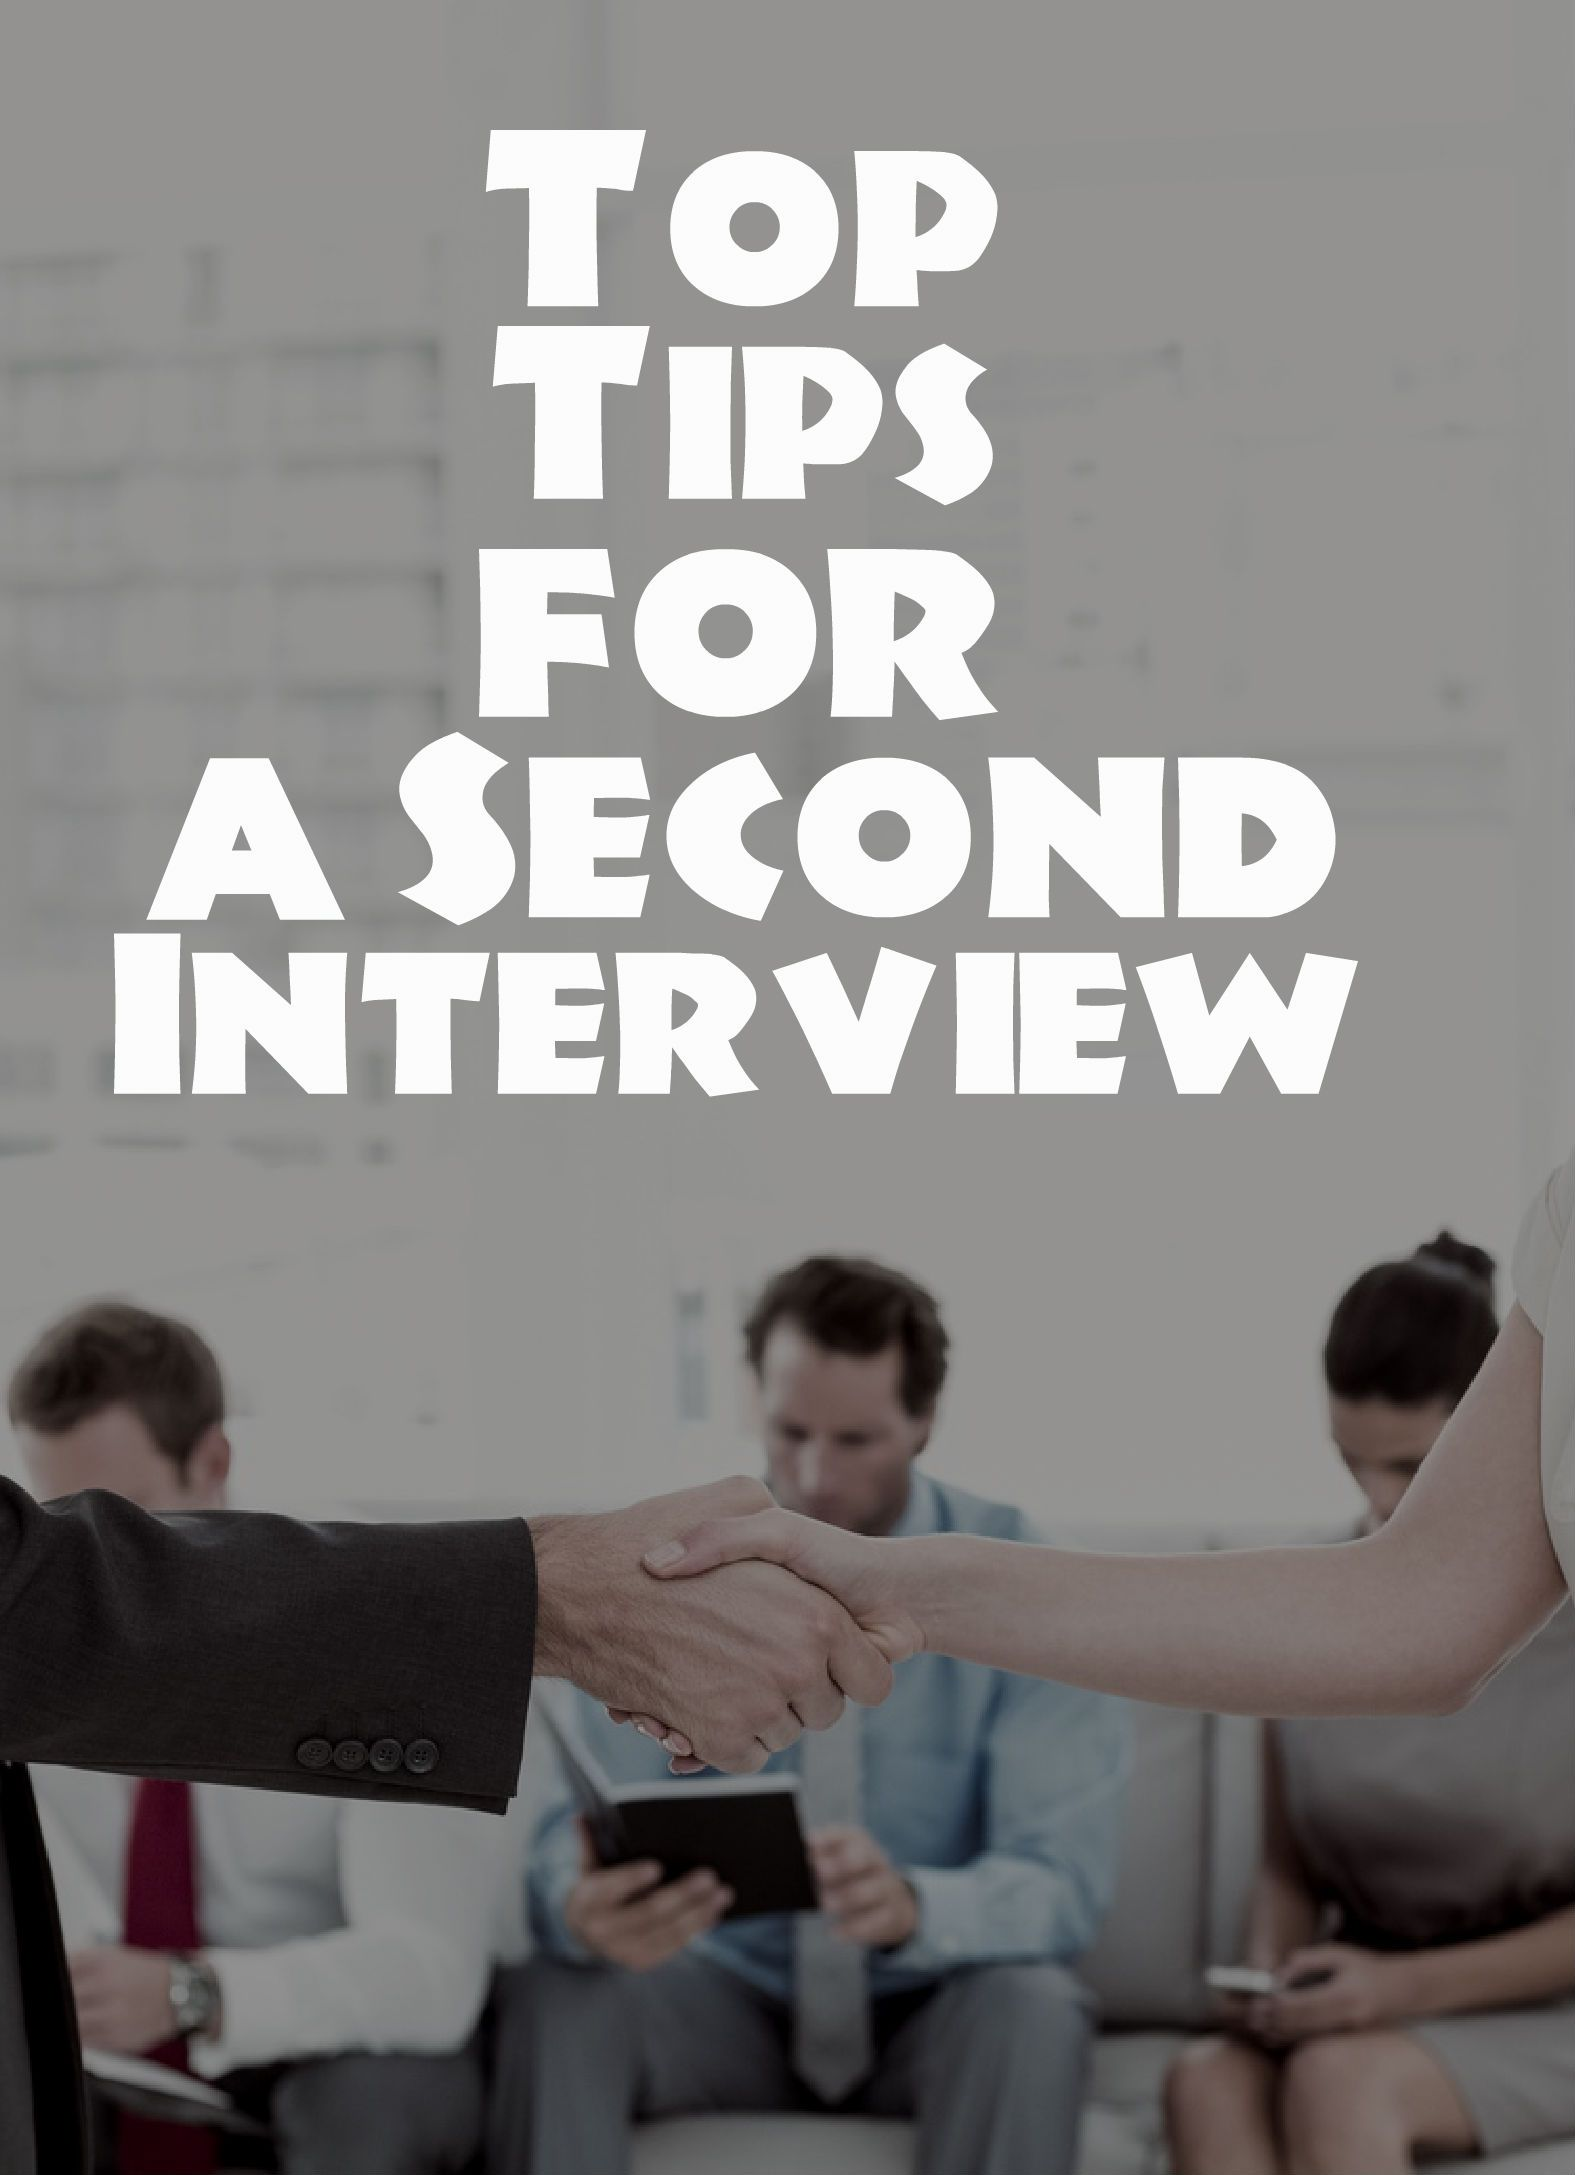 Bureau Interviewer Professionnel The 25 43 Best Top Interview Questions Ideas On Pinterest